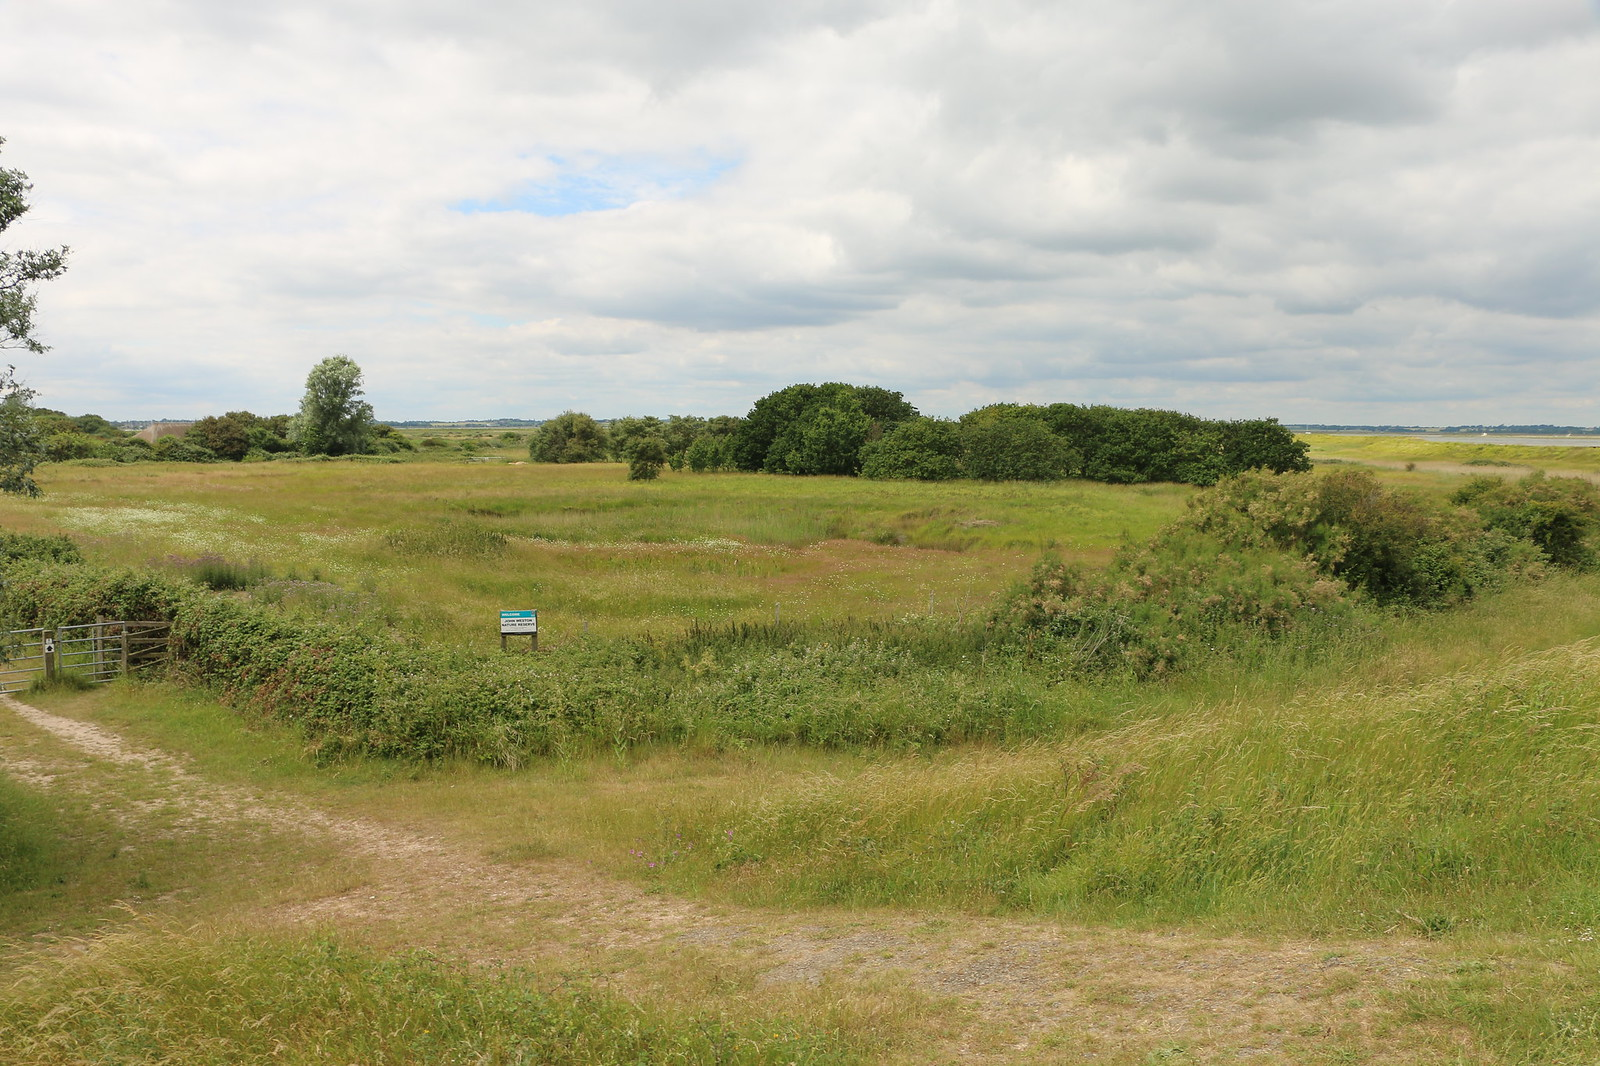 John Weston Nature Reserve, The Naze, Walton-on-the-Naze